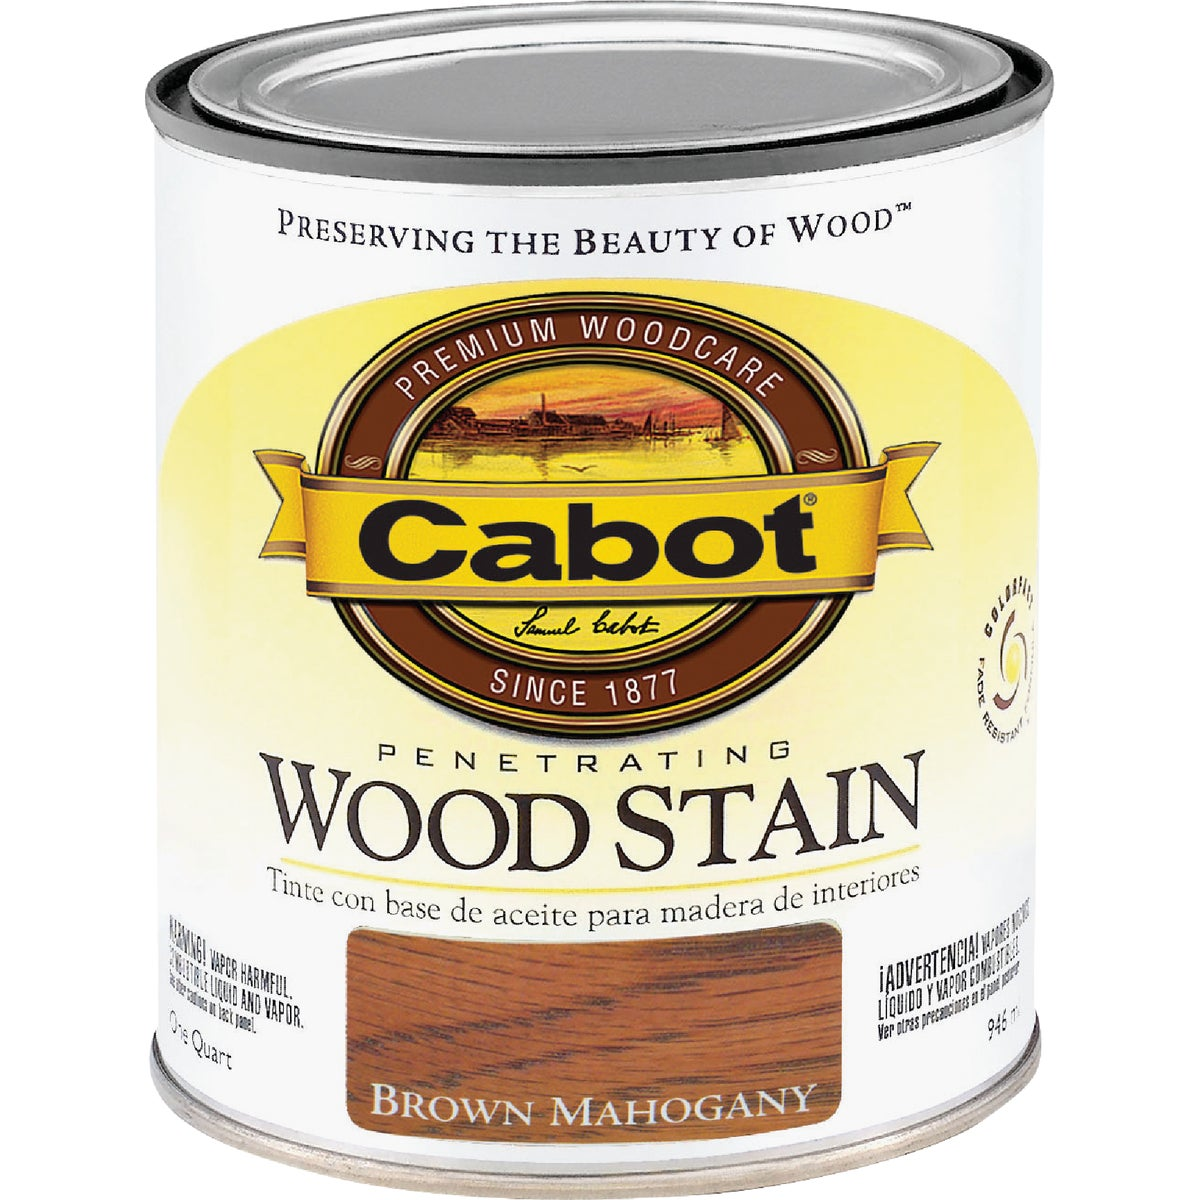 INT BRN MAHOG WOOD STAIN - 144.0008134.005 by Valspar Corp